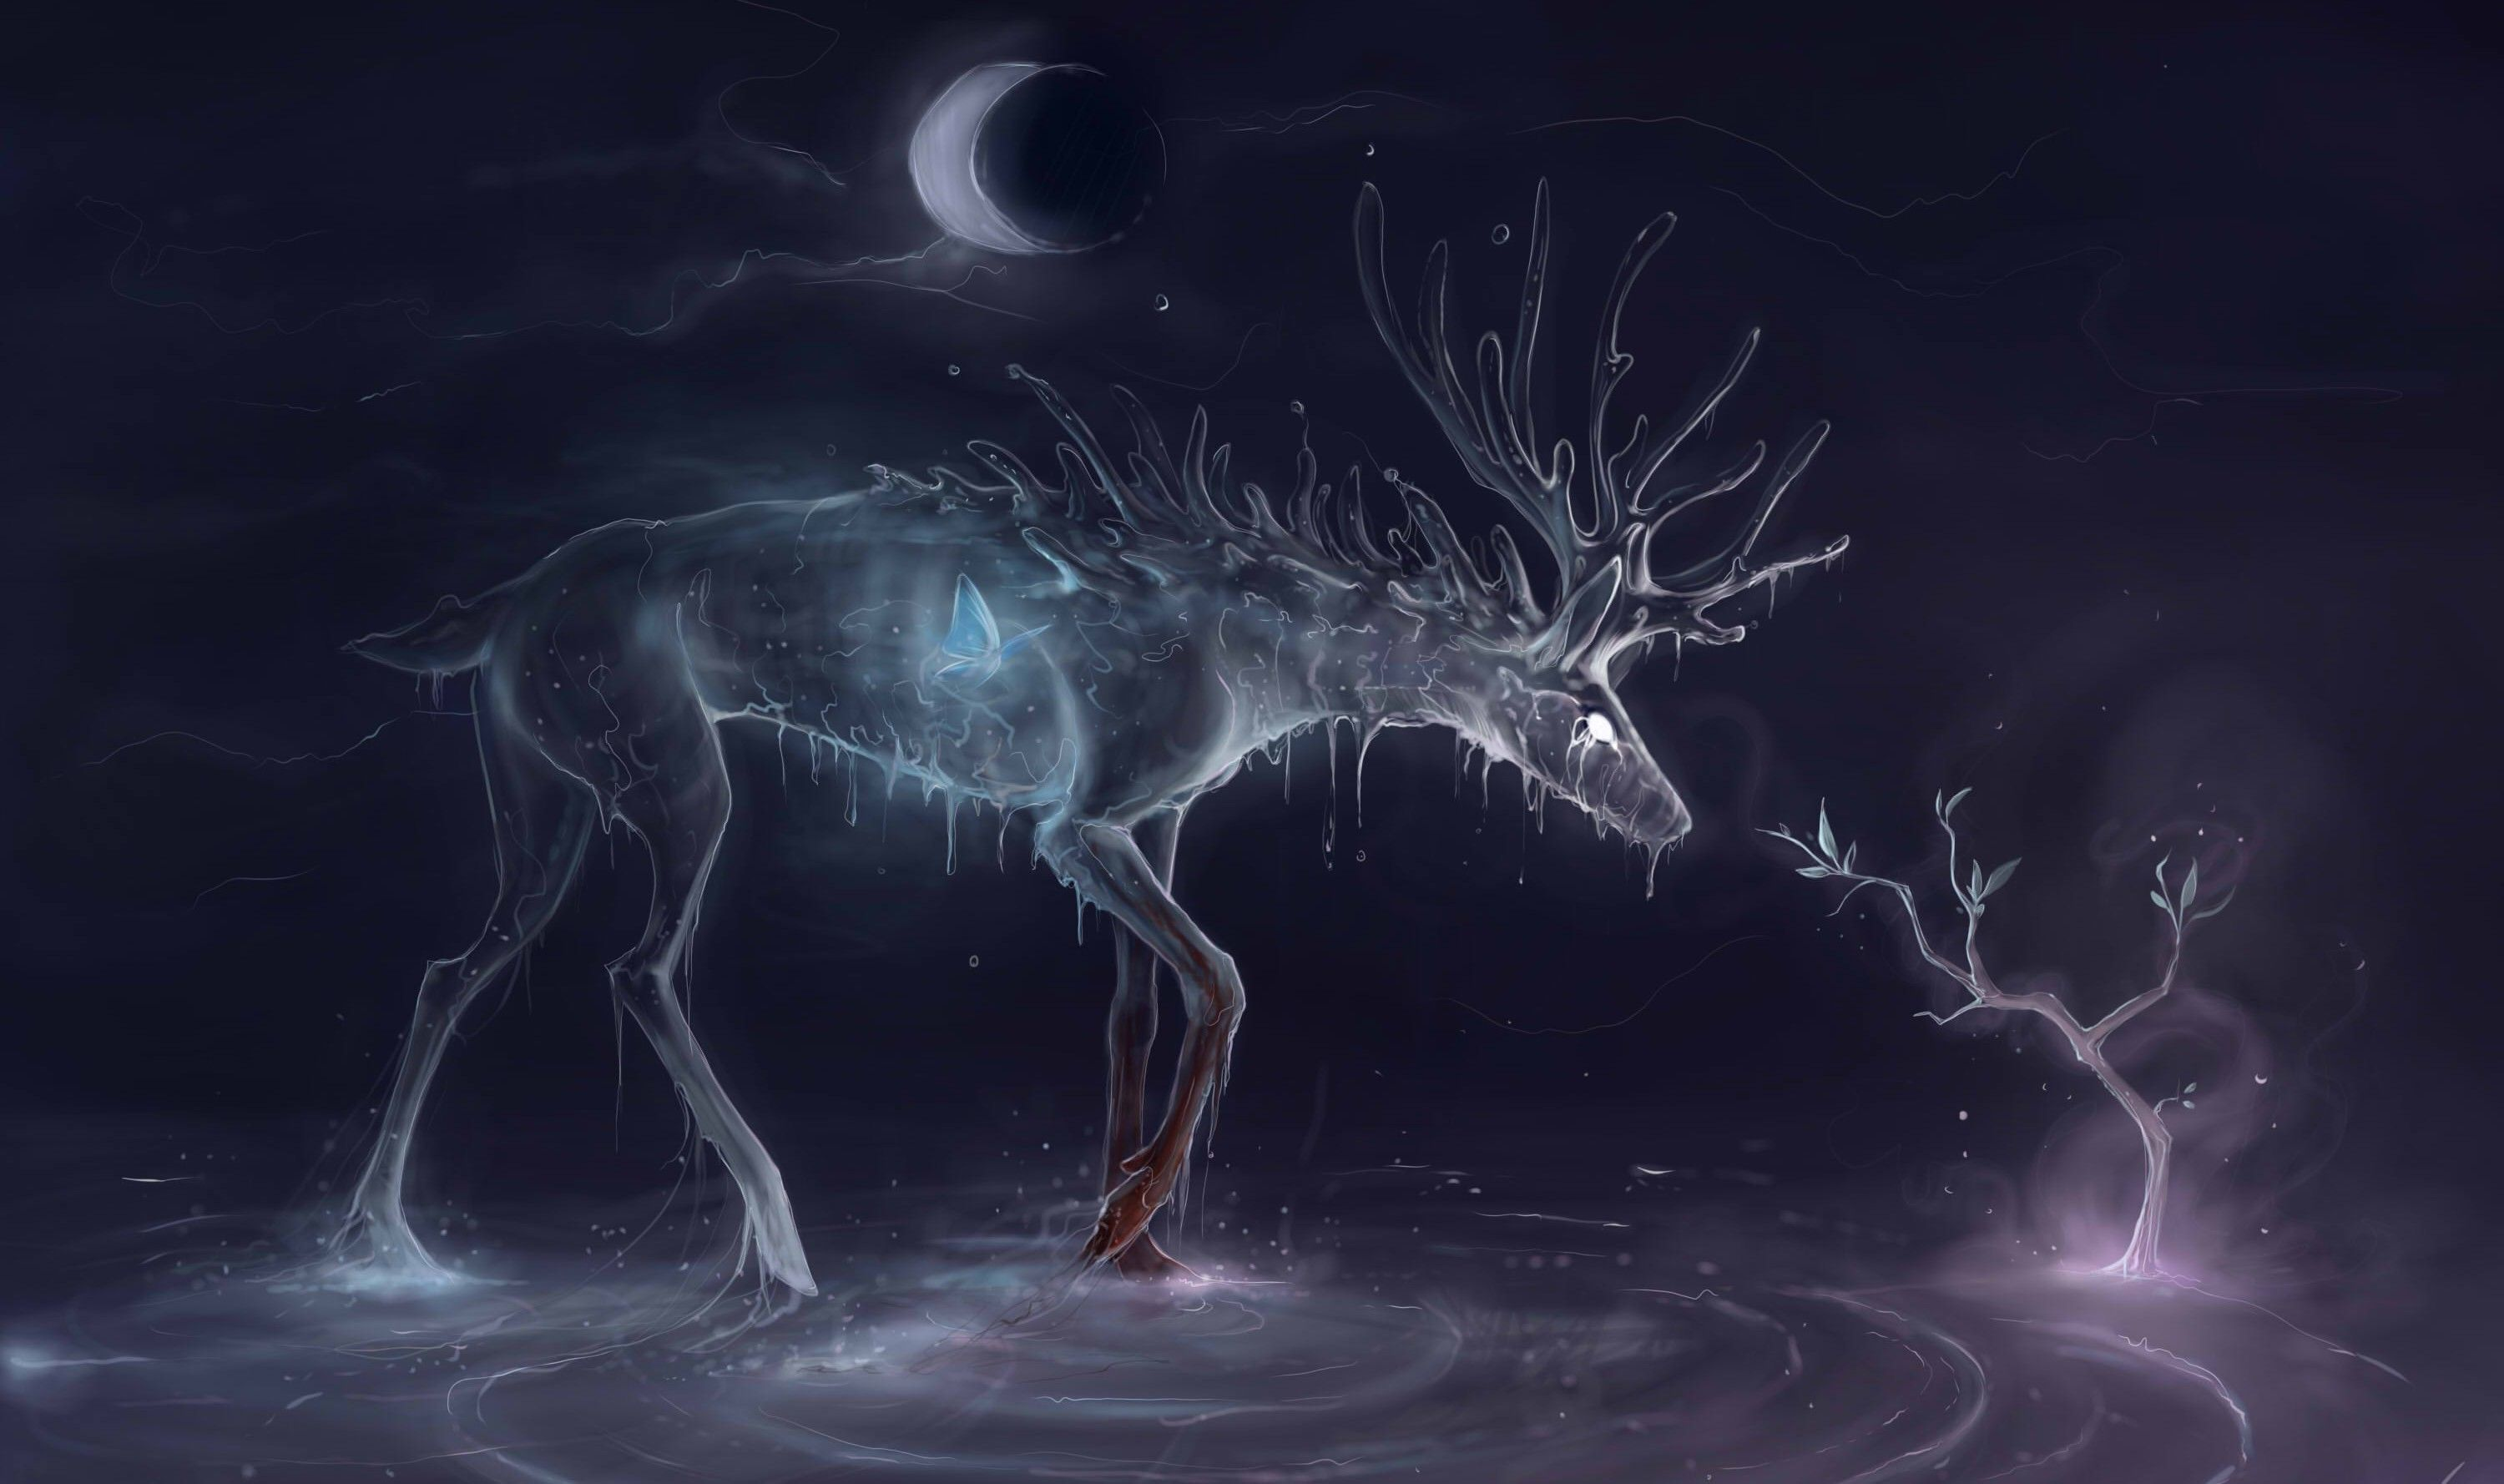 3000x1778 395 Deer HD Wallpapers | Background Images - Wallpaper Abyss